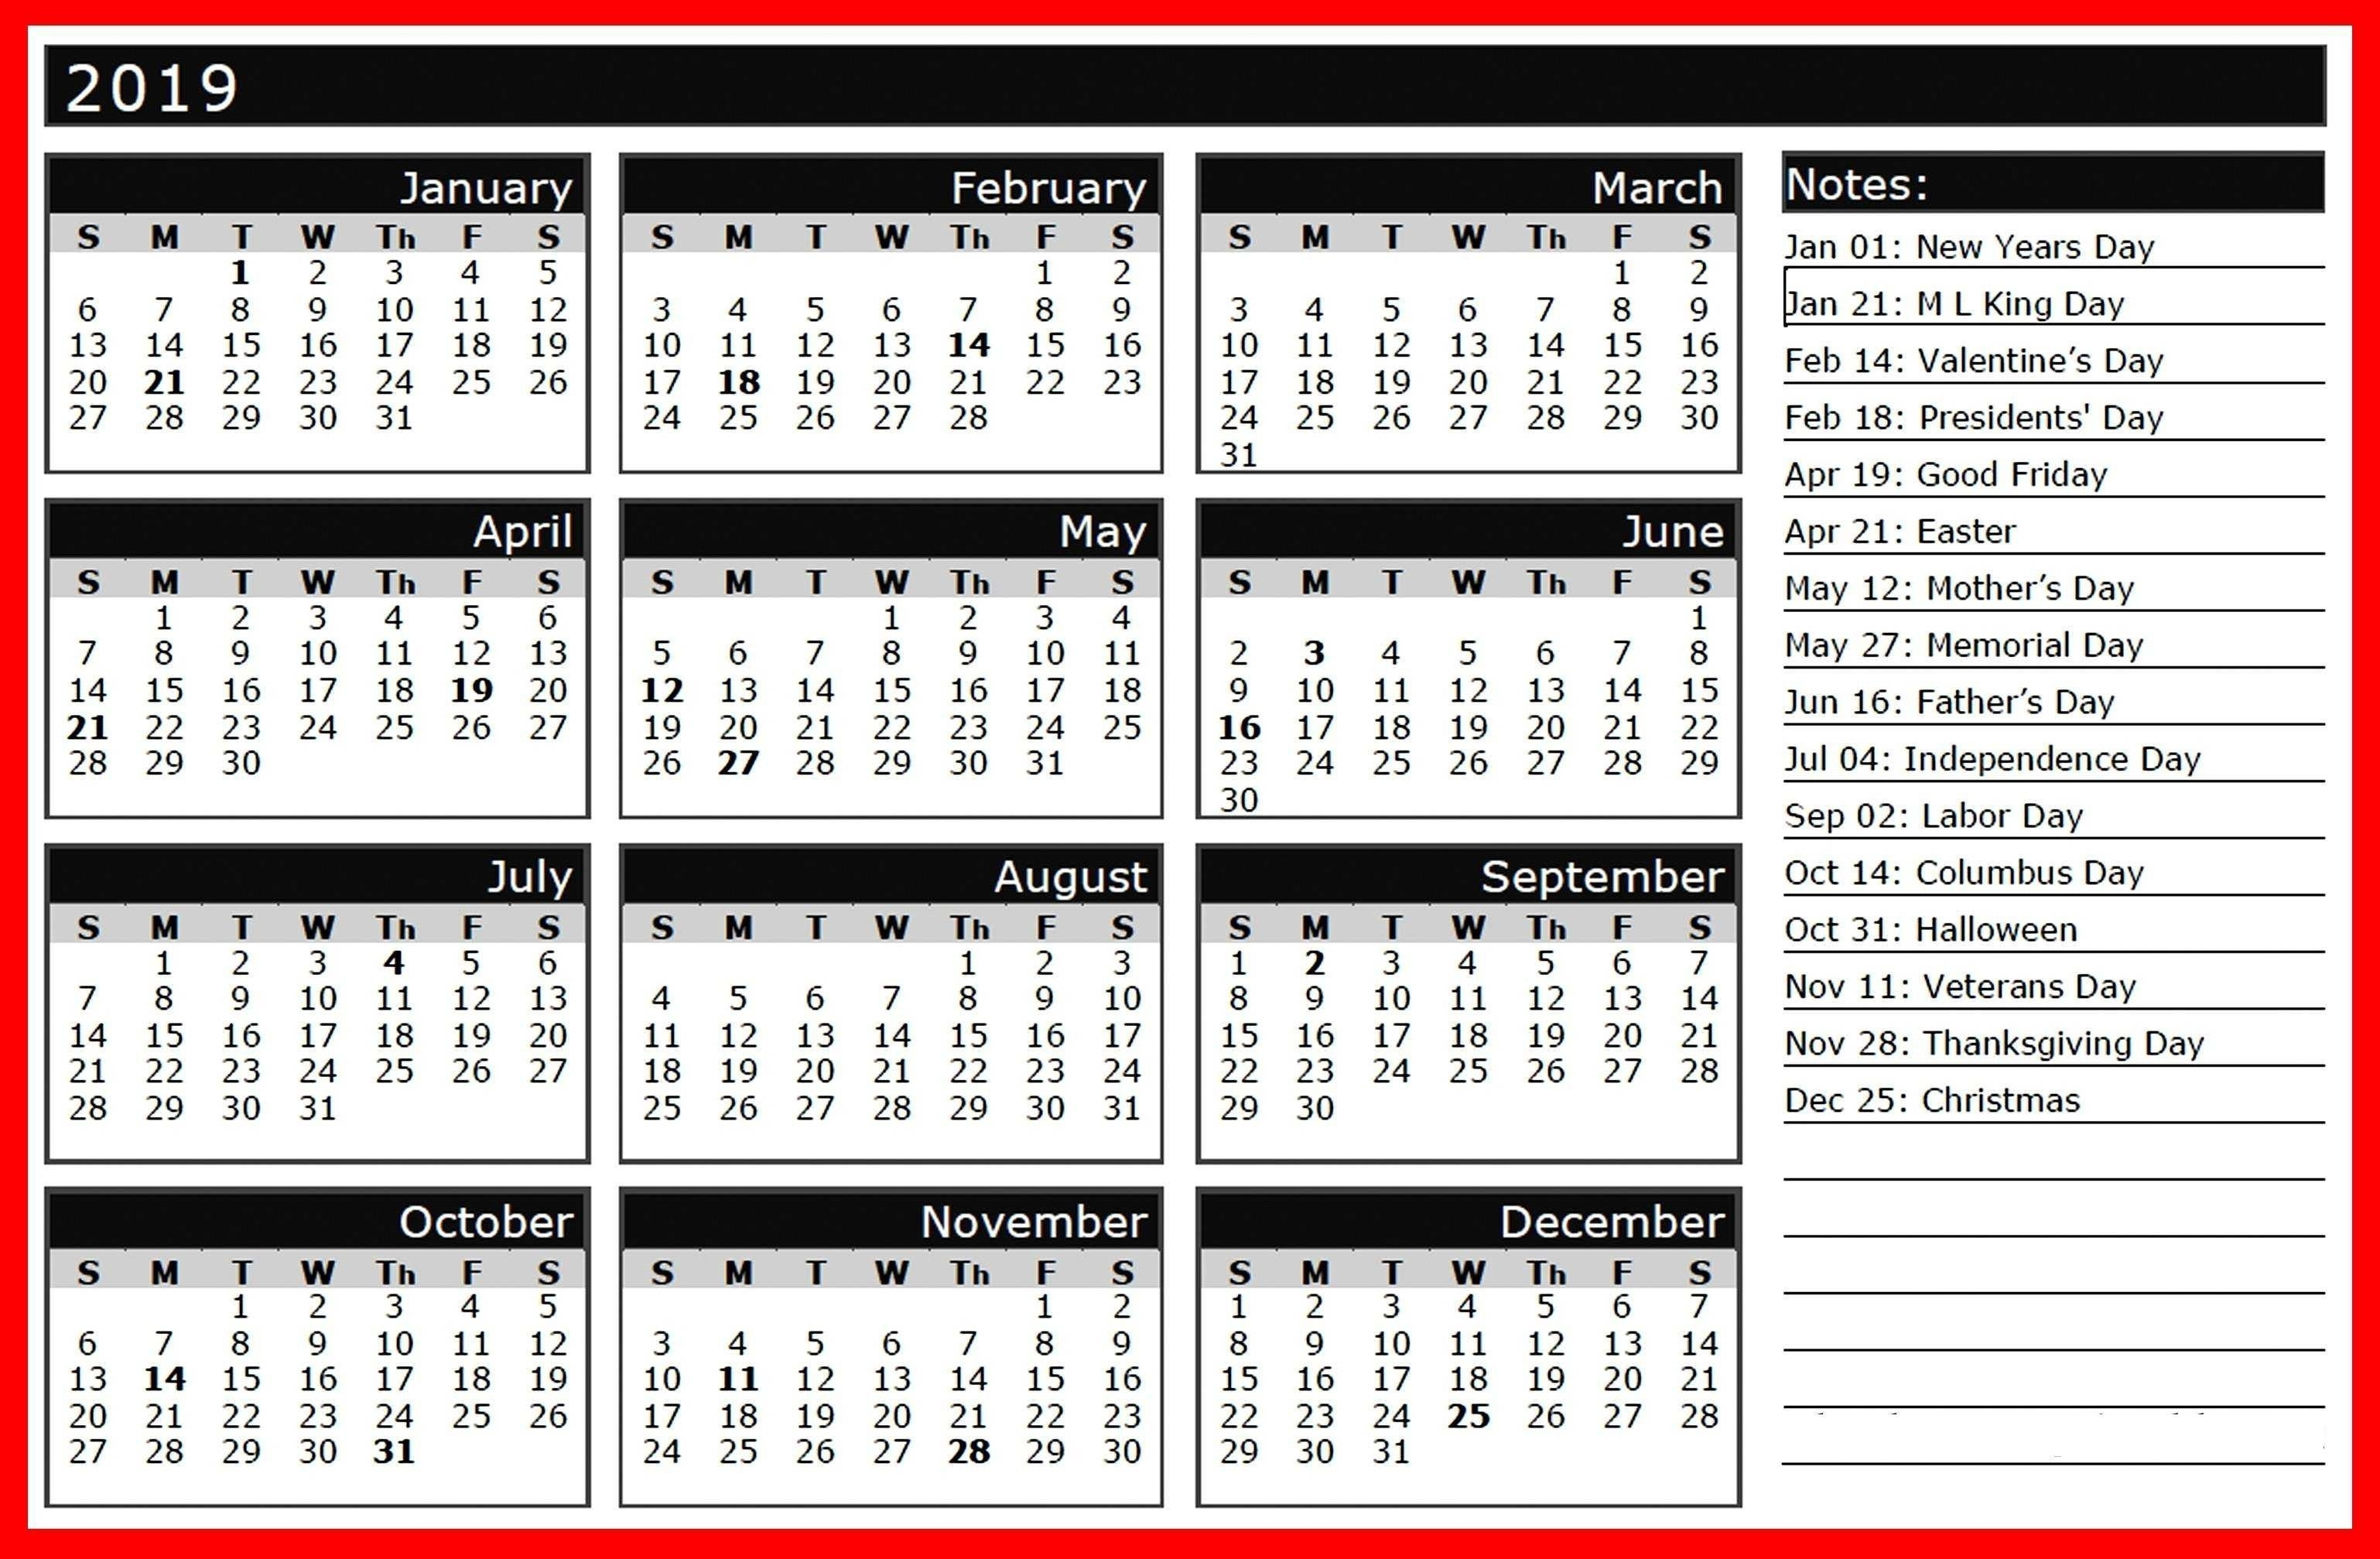 2018 Year Calendar Hd Wallpaper | 2019 Calendars | 2019 Calendar Year Calendar With Holidays